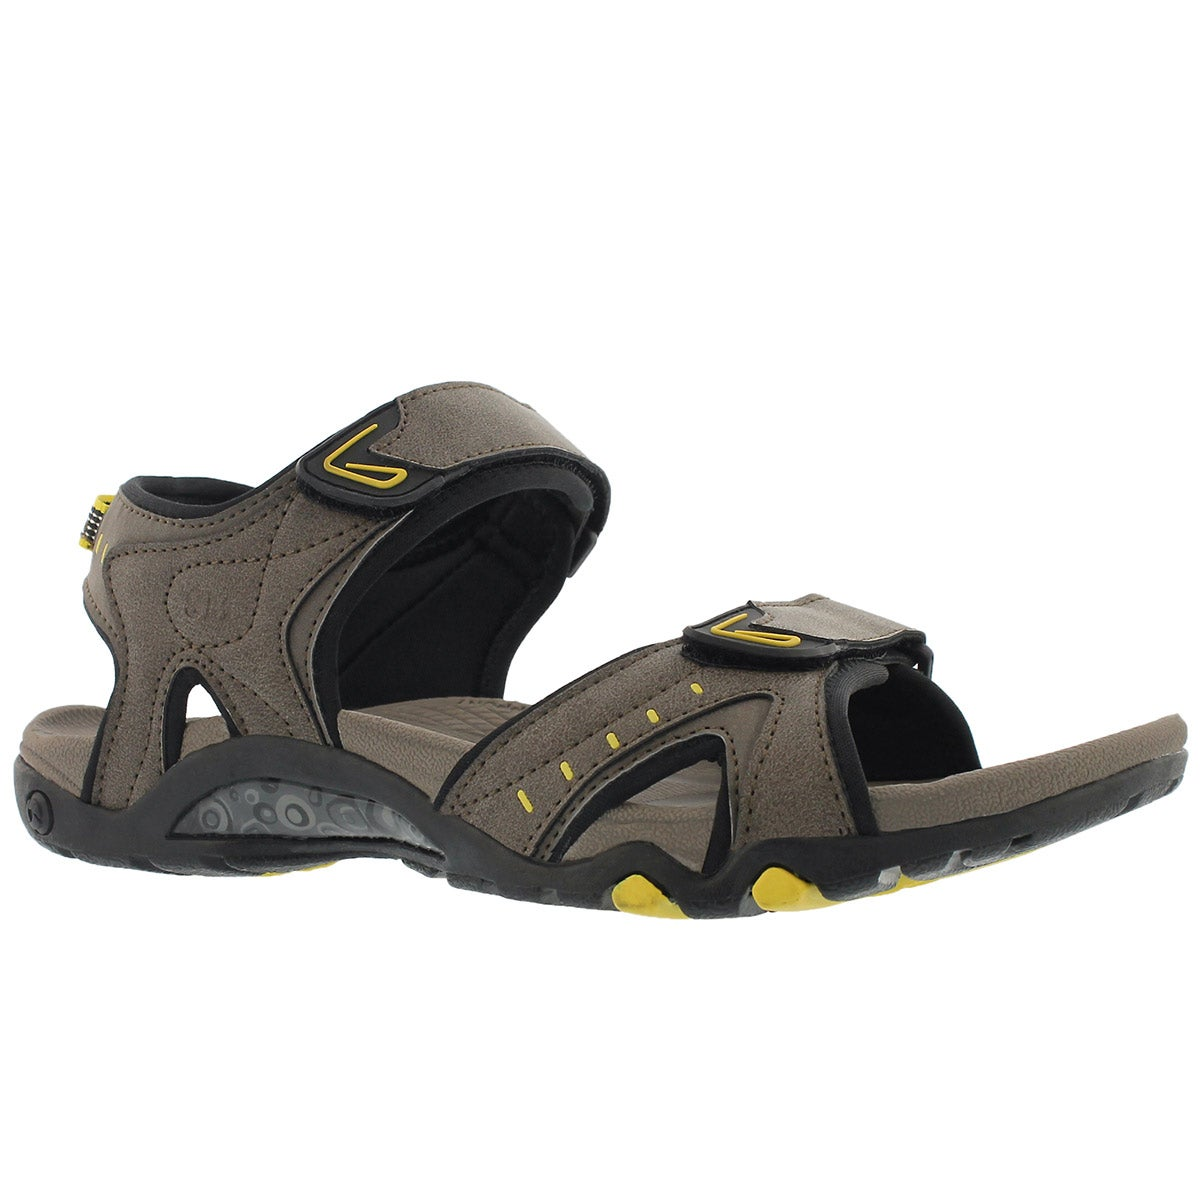 Men's KEITH taupe 3 strap sport sandals